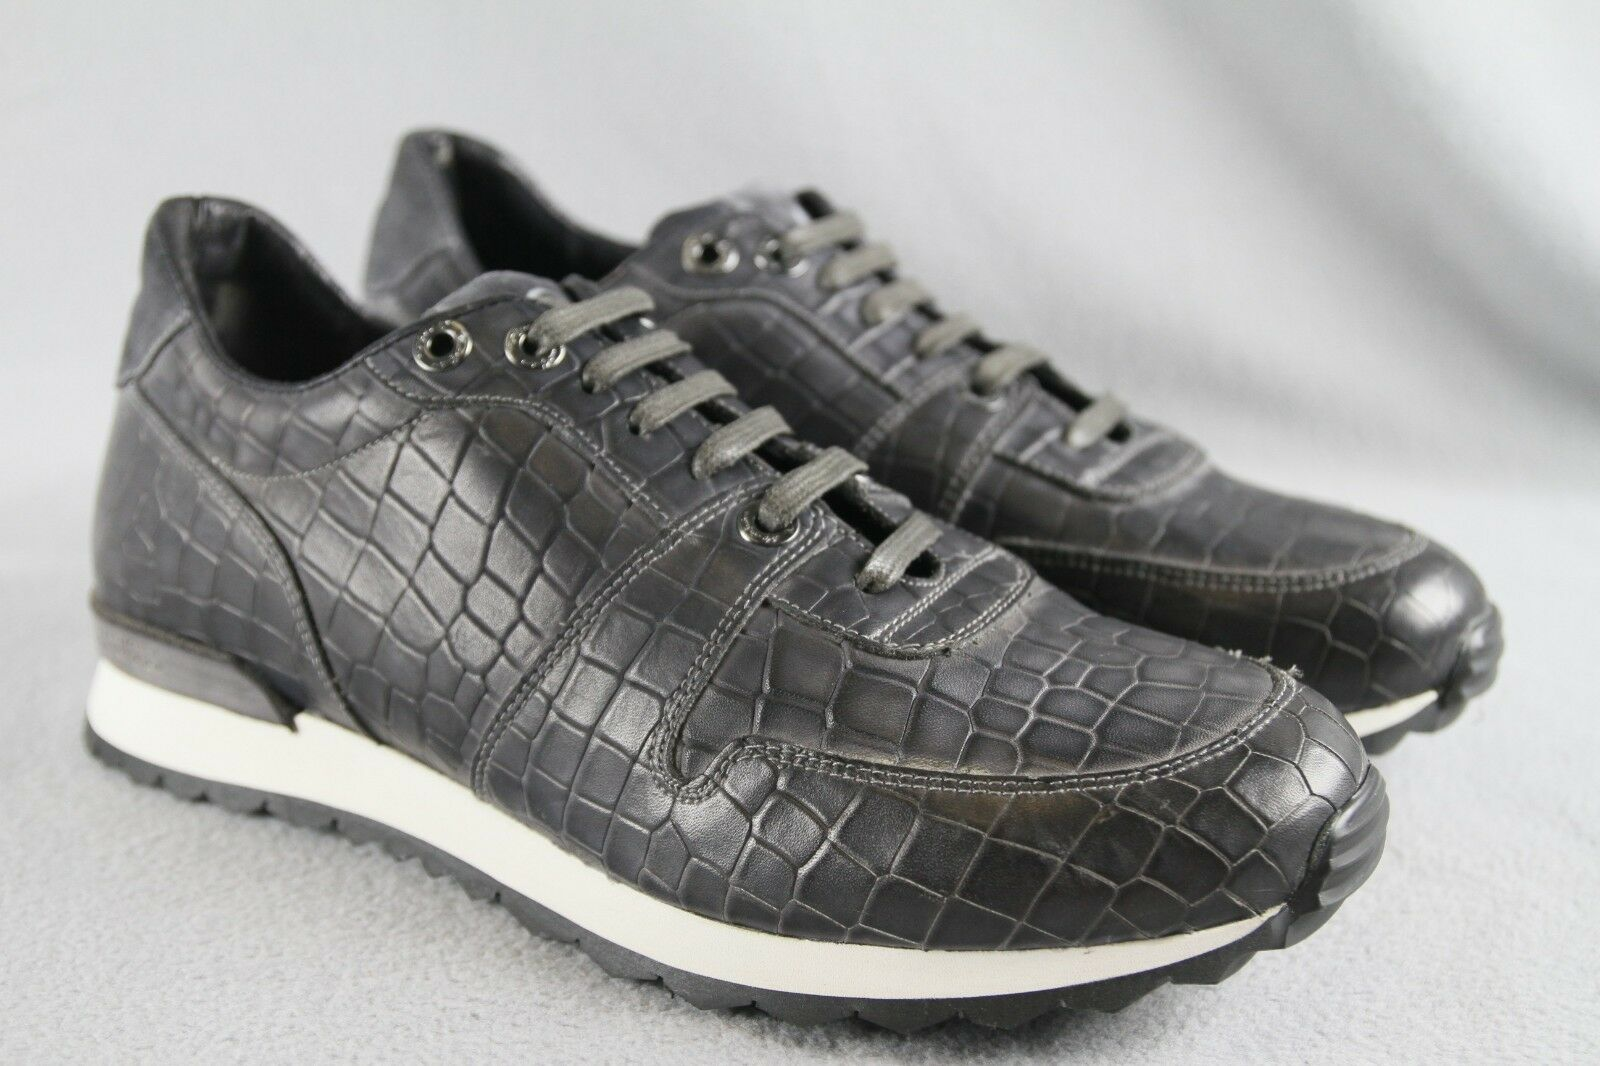 398 Robert Graham AMAZON Gray Croc Embossed Italian Leather Lace Up Size 11 ANB